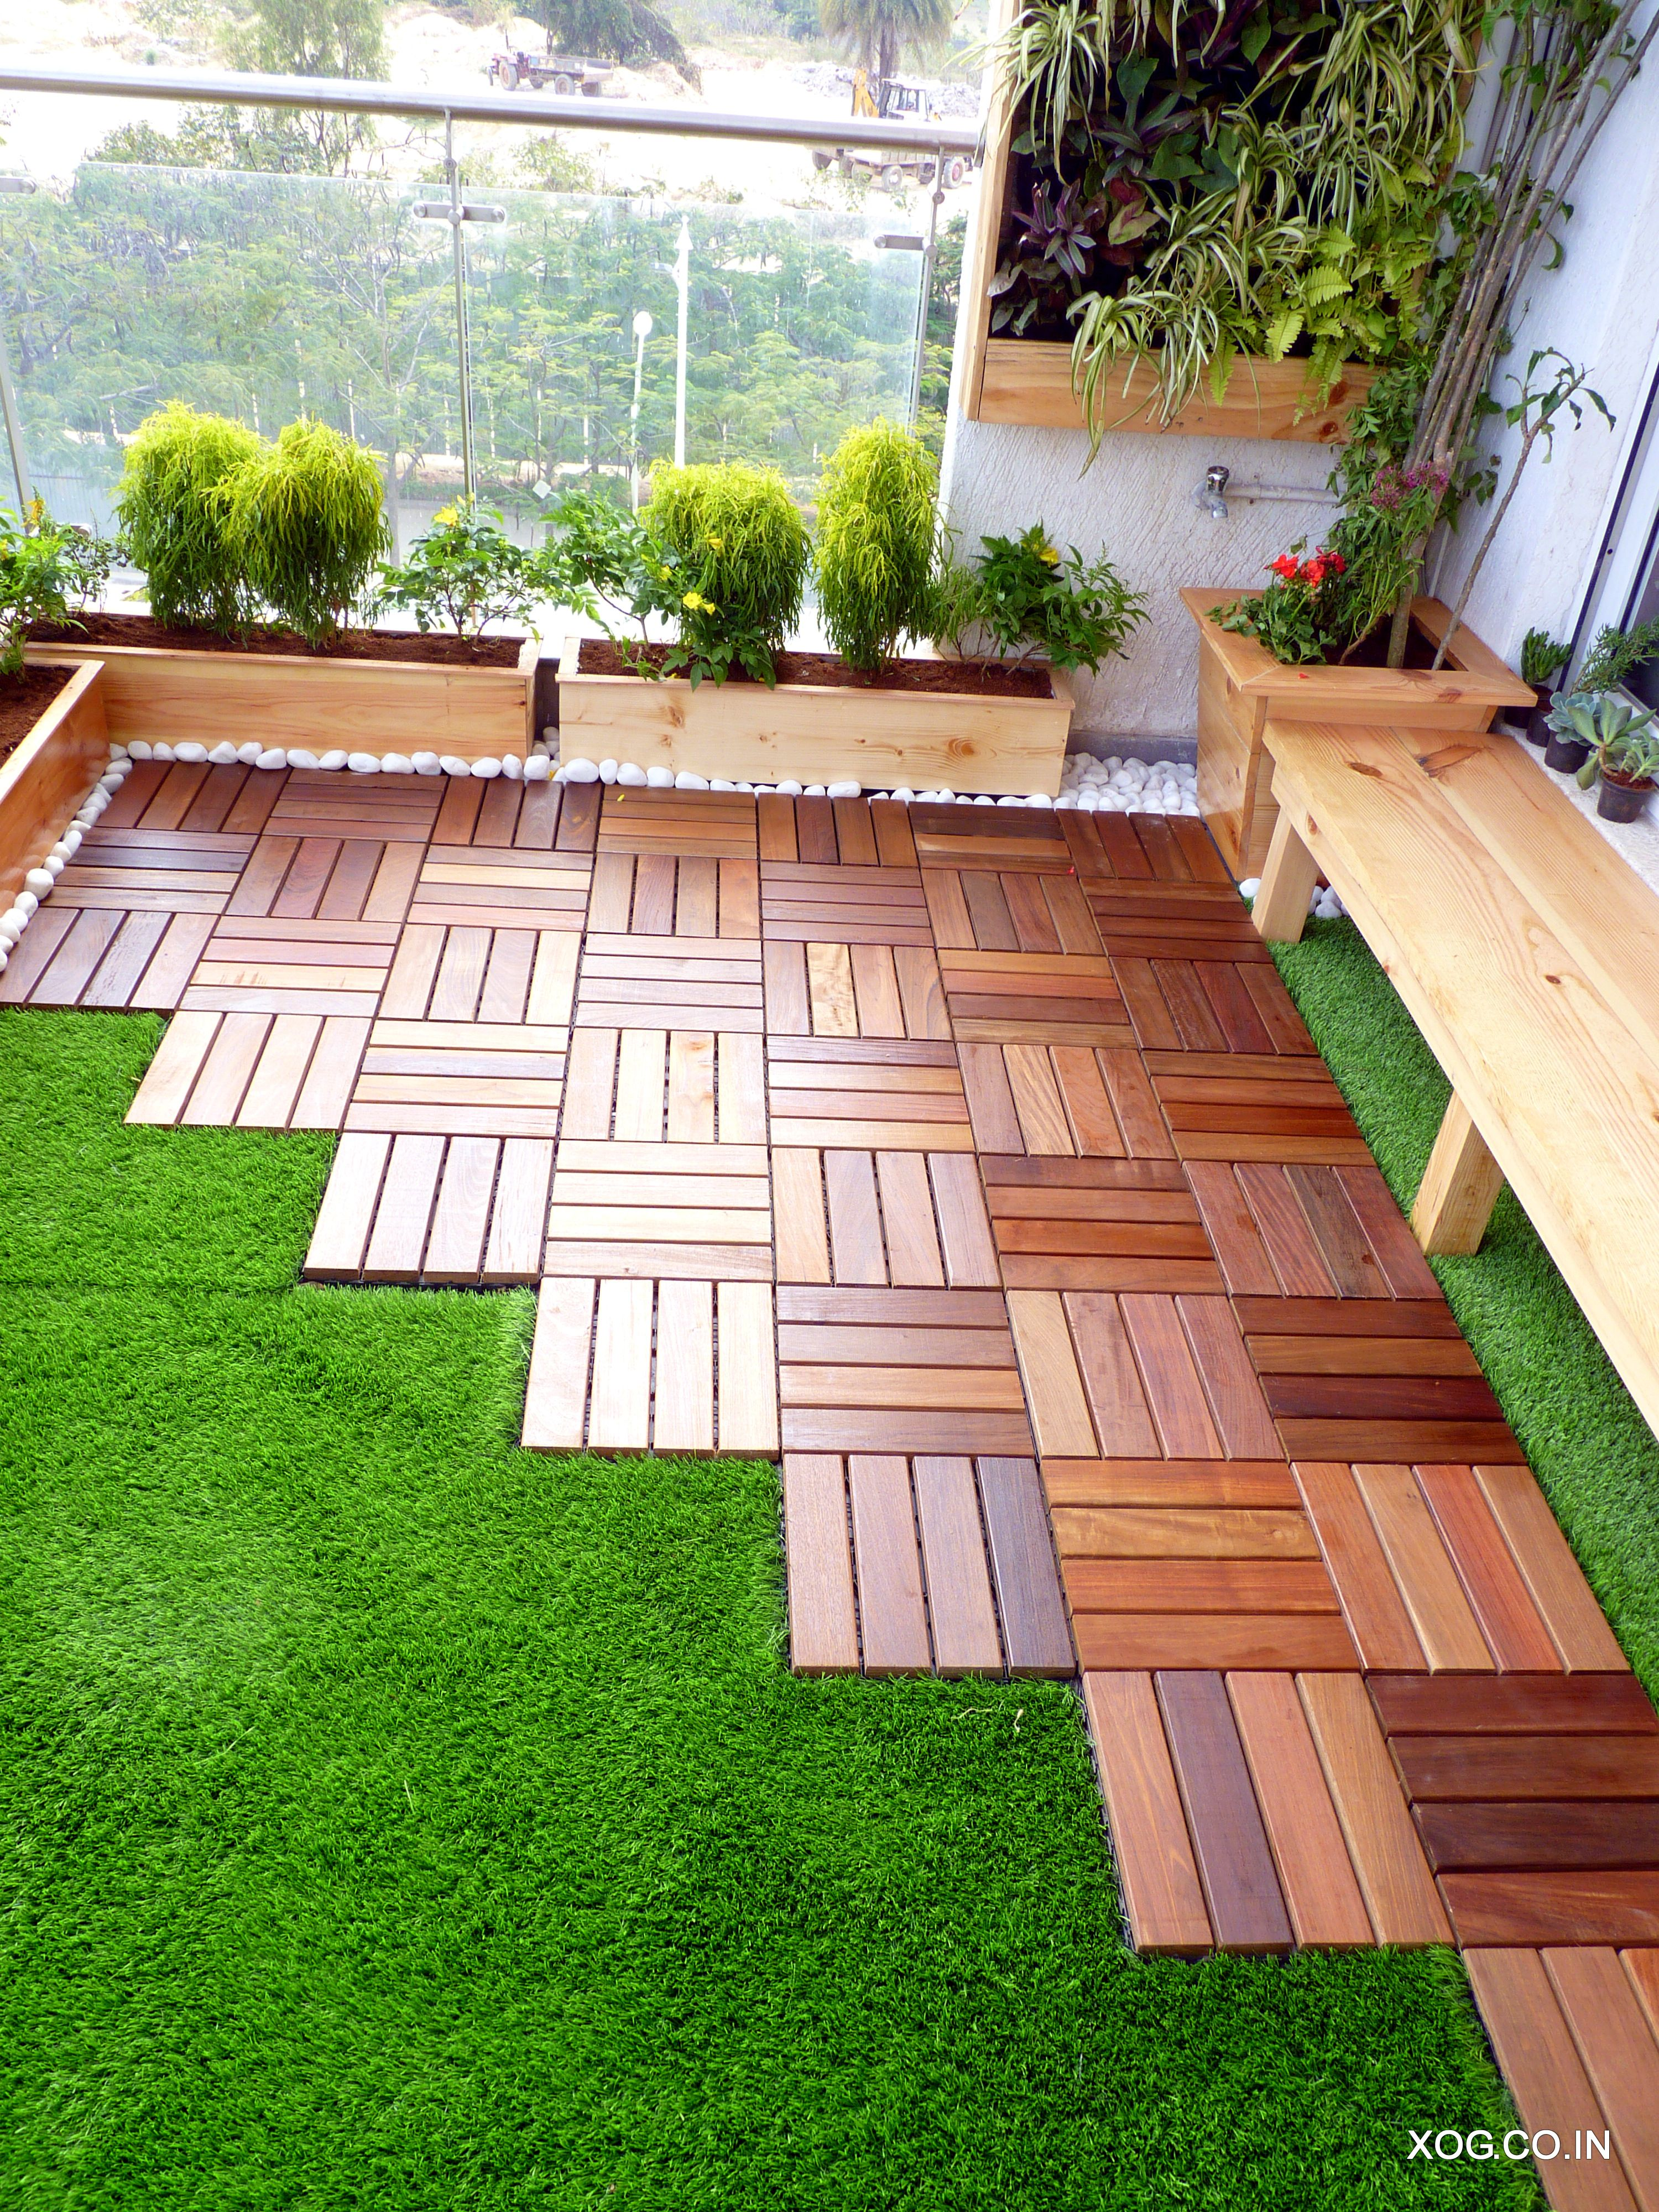 Brazilian Ipe Hard Wood Deck With Artificial Grass Flooring By